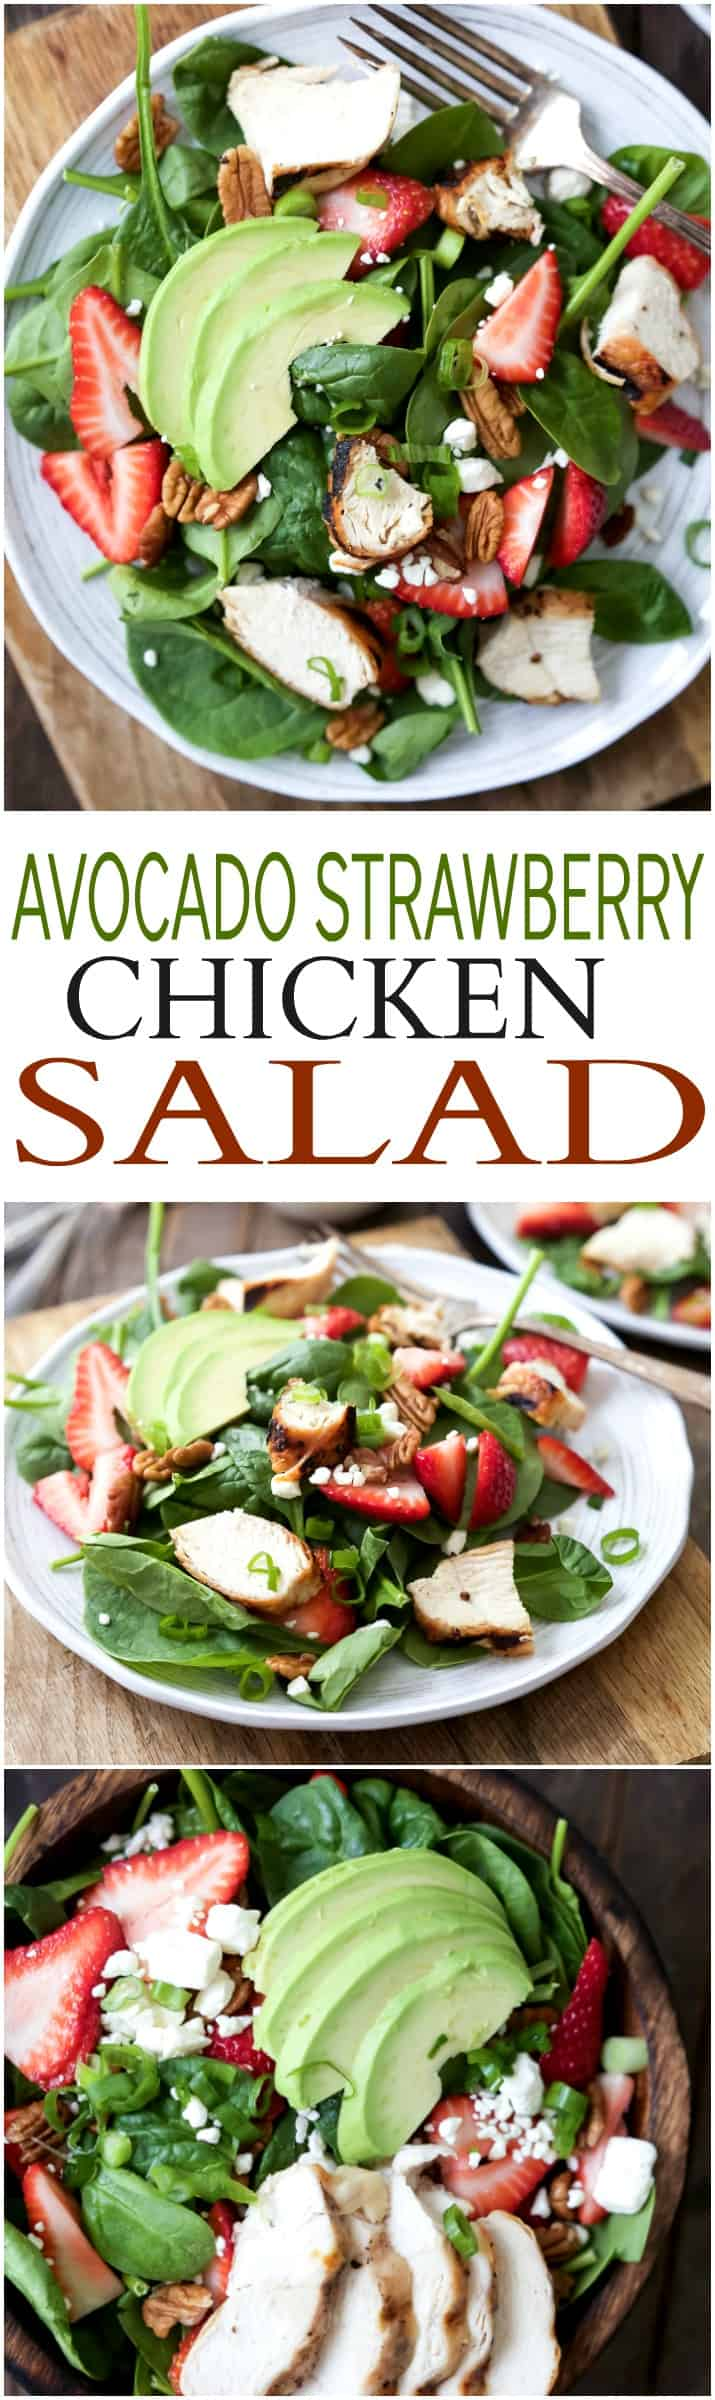 Strawberry Avocado Chicken Salad with Balsamic Vinaigrette | Easy ...